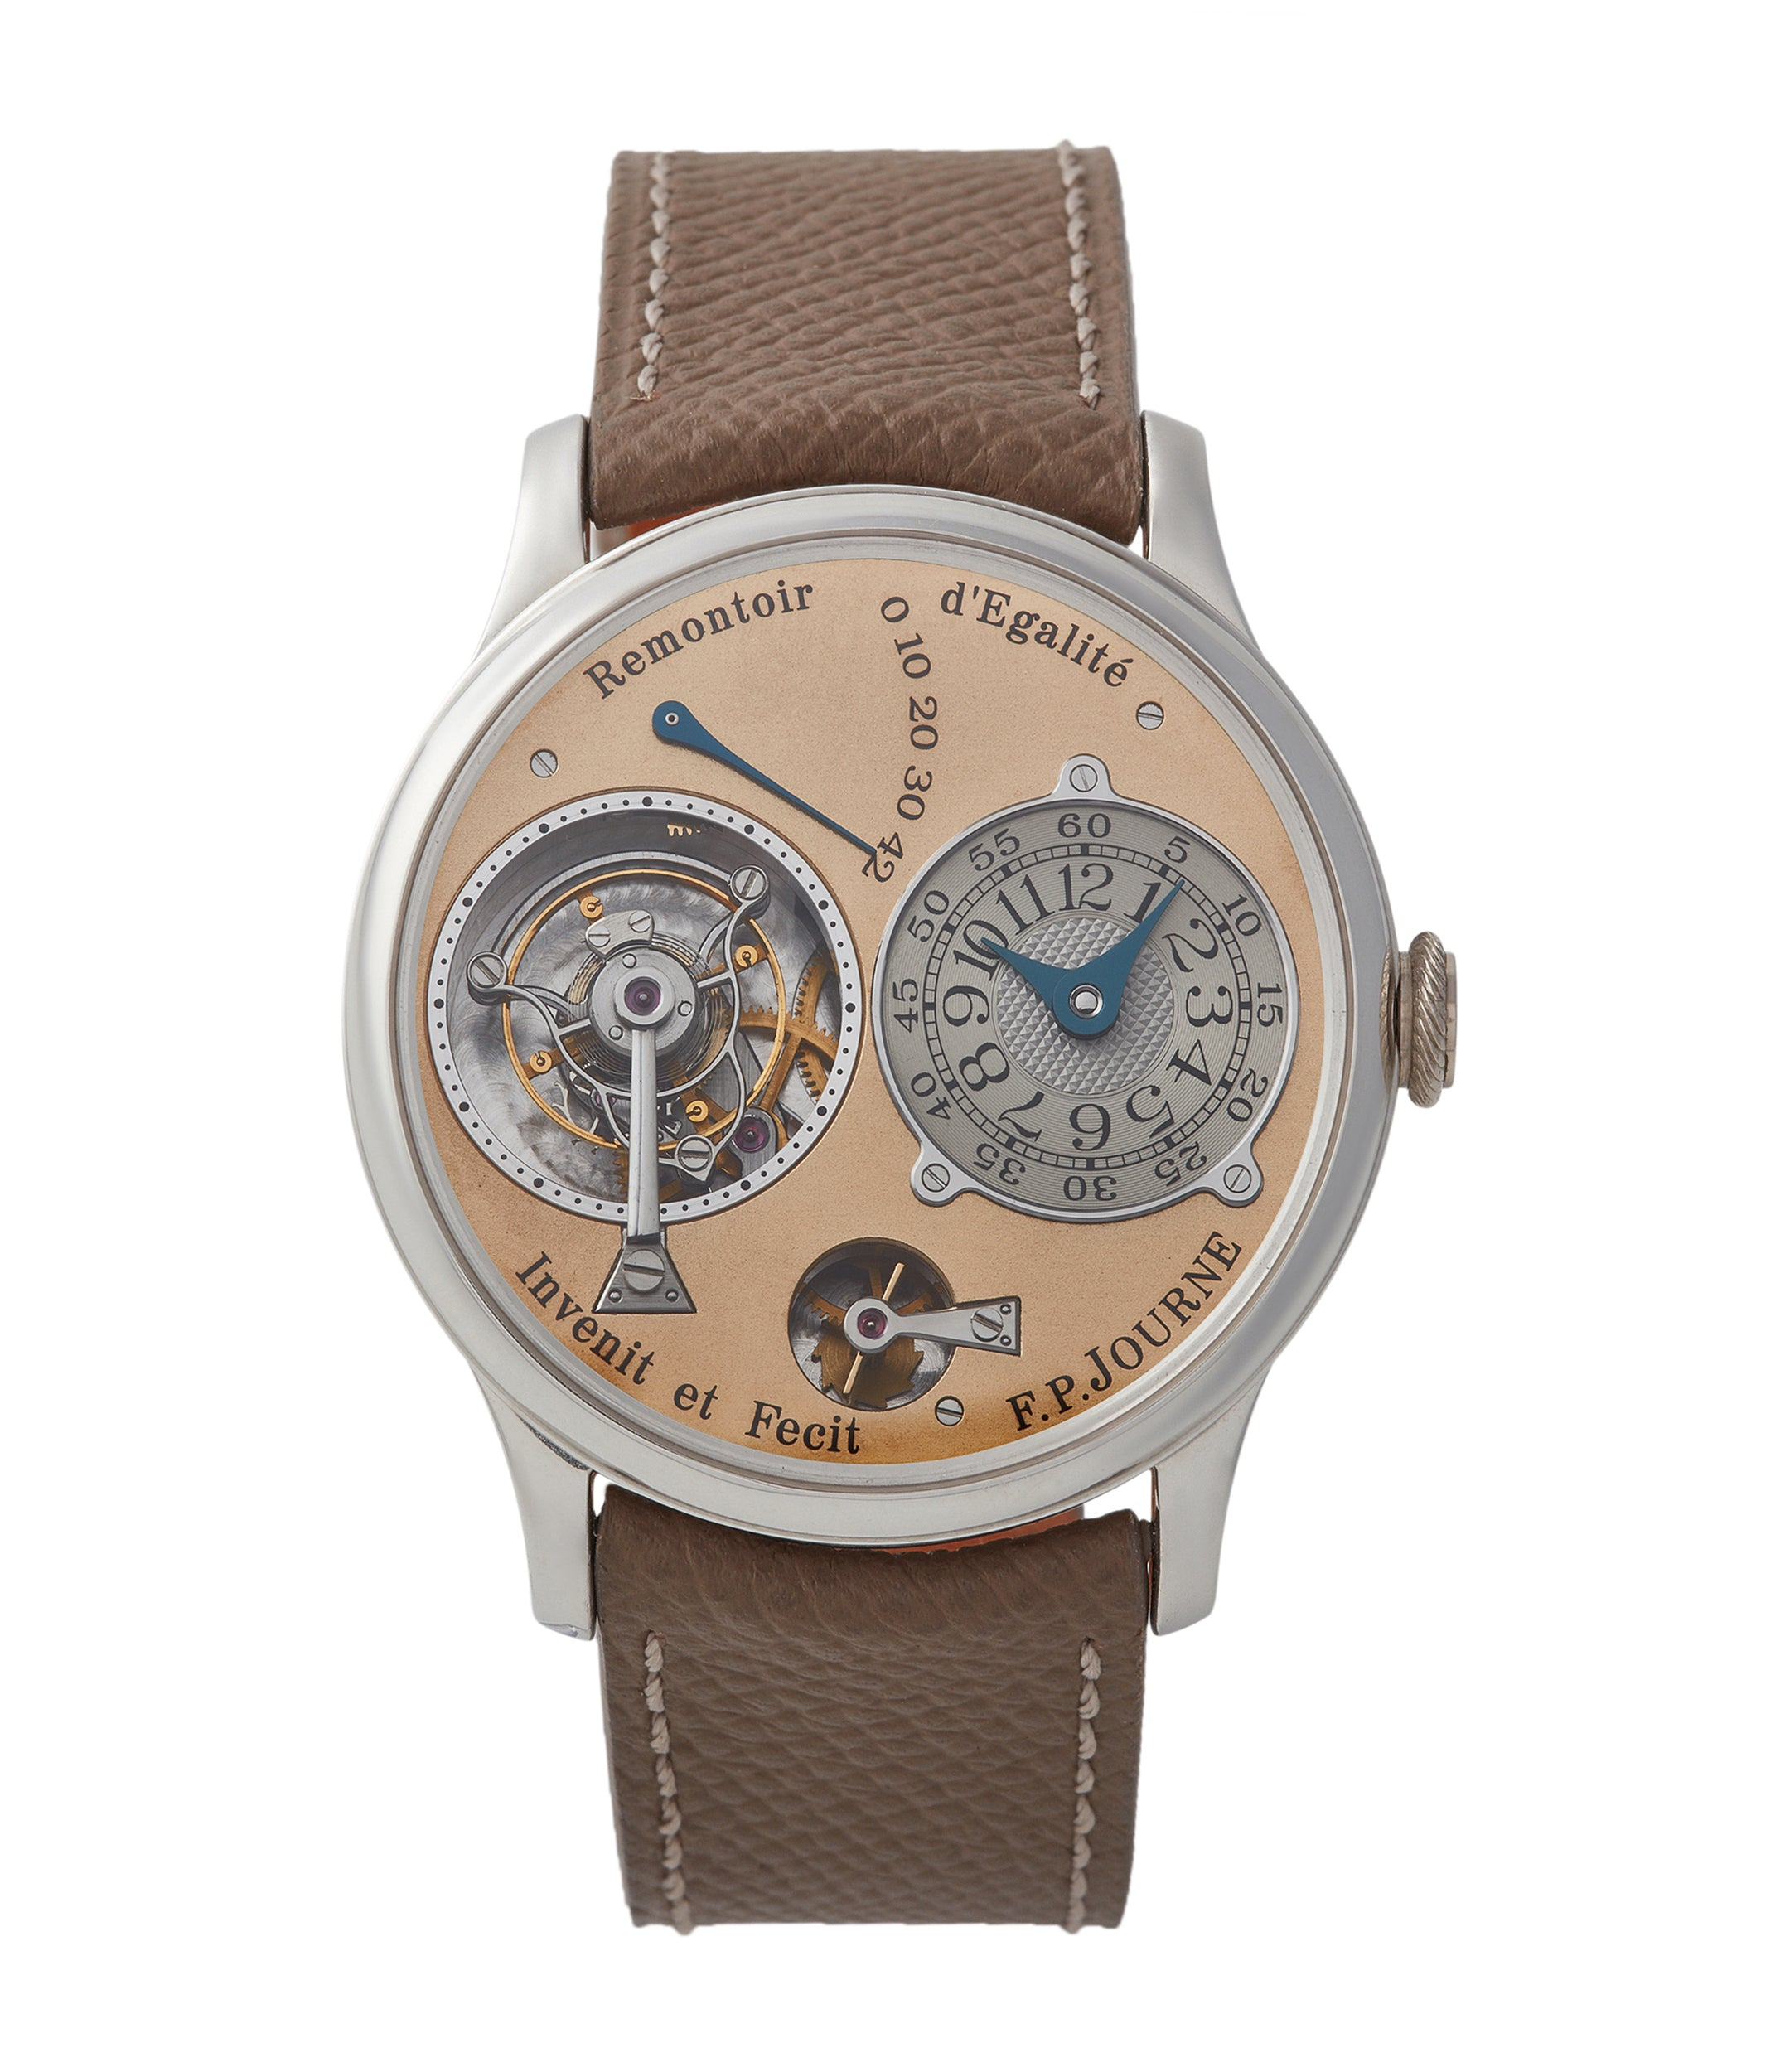 buy F. P. Journe Tourbillon 01T brass movement 38 mm platinum dress watch for sale online at A Collected Man London UK specialist of rare independent watches